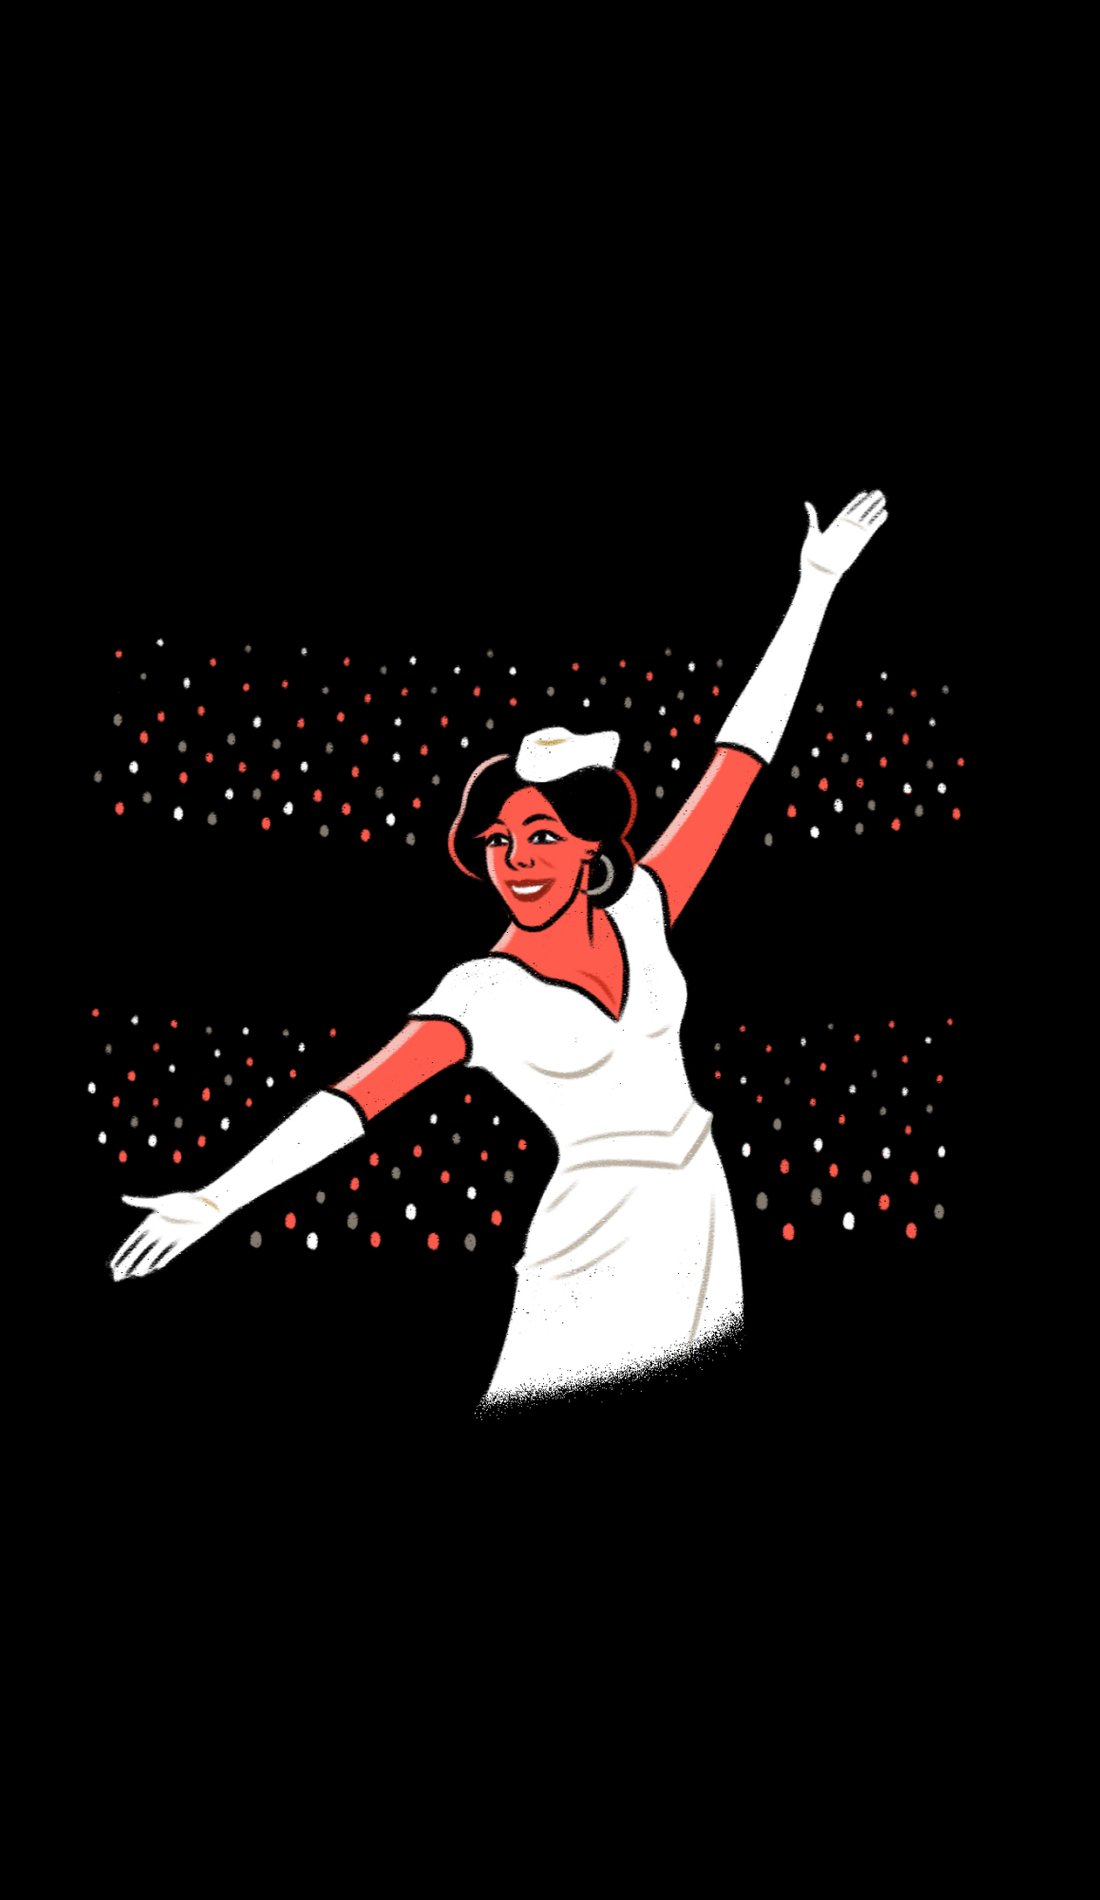 A A Raisin In The Sun live event